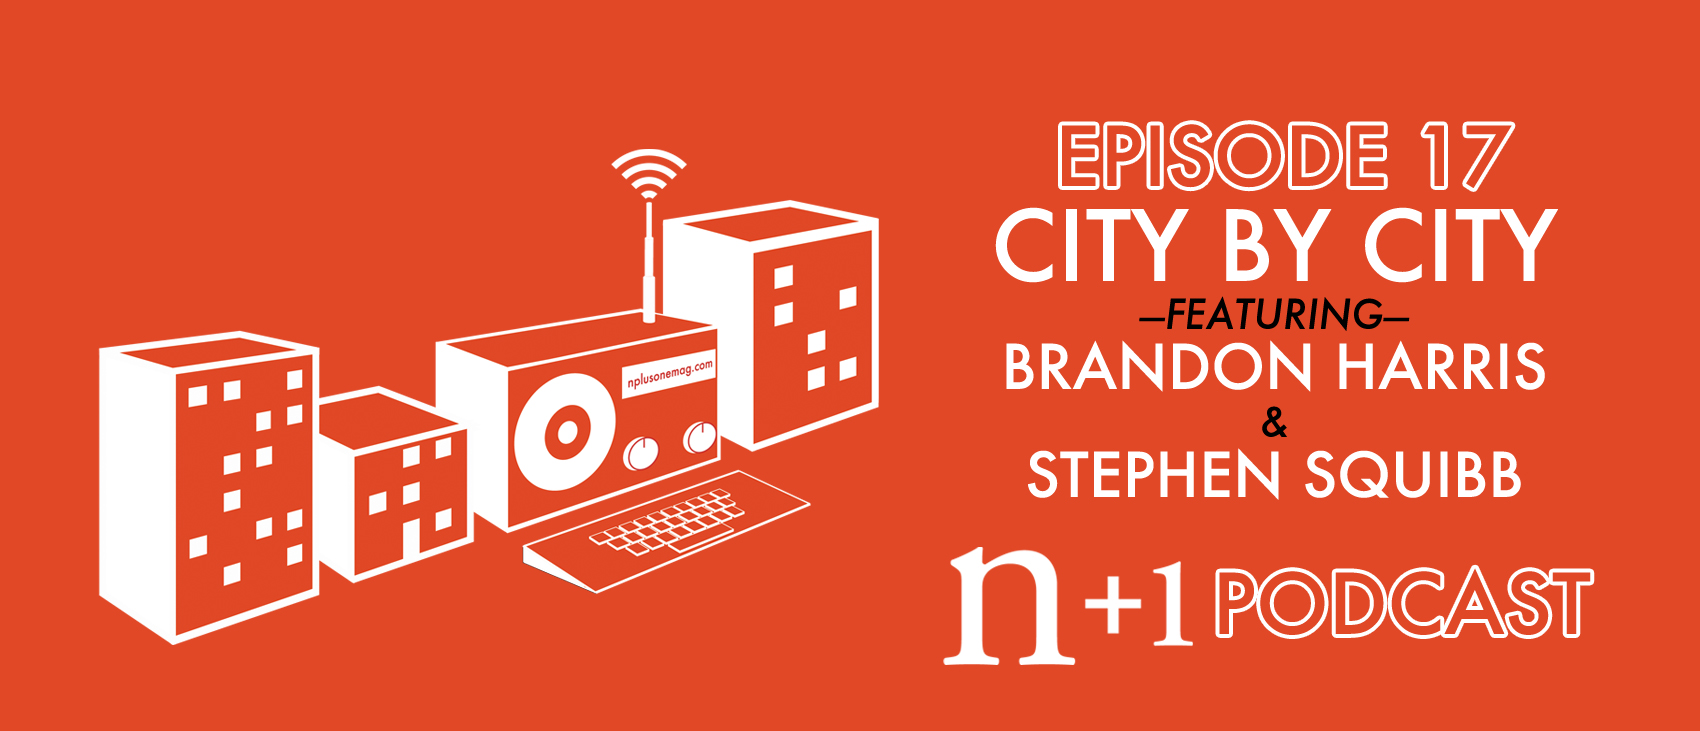 Episode 17: City by City